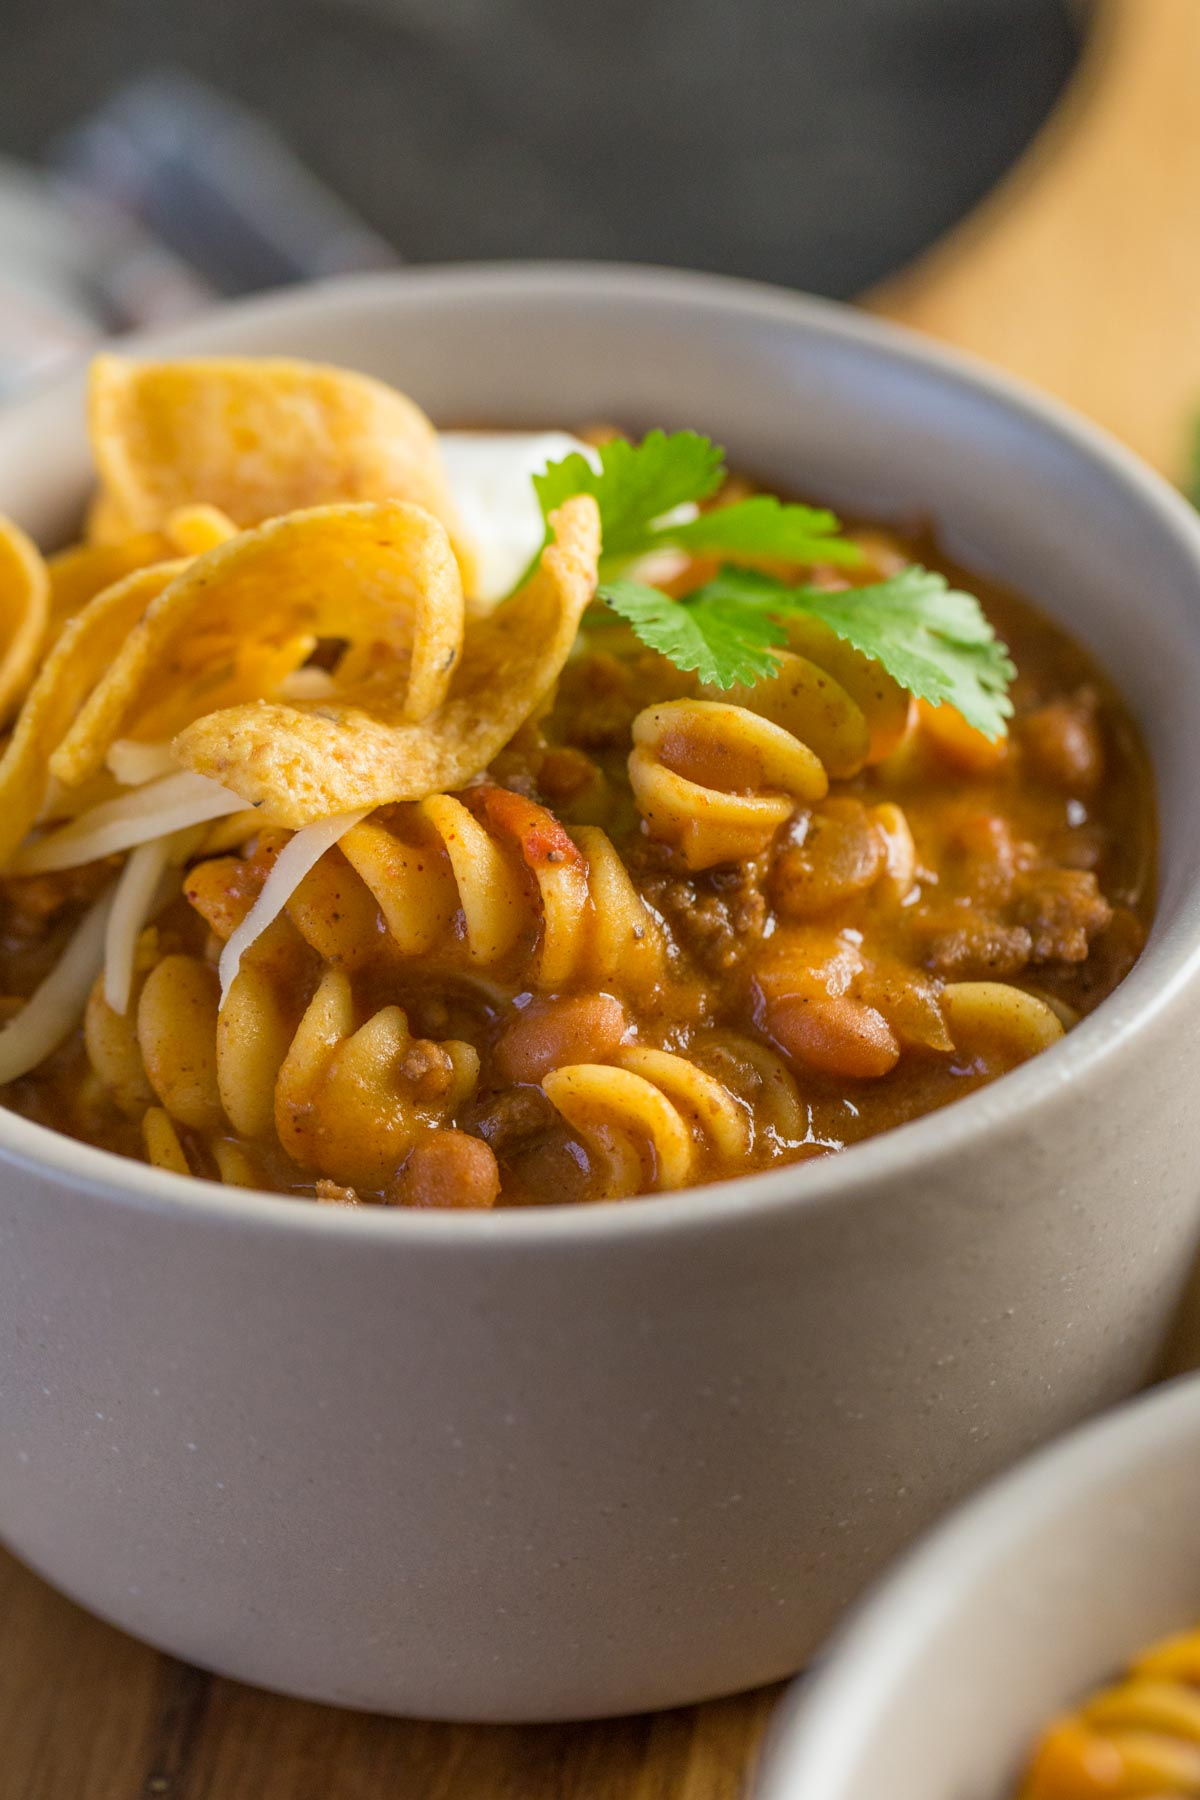 A close up shot of a grey bowl filled with Beef Queso Chili with pasta, Fritos, source cream, and cilantro.